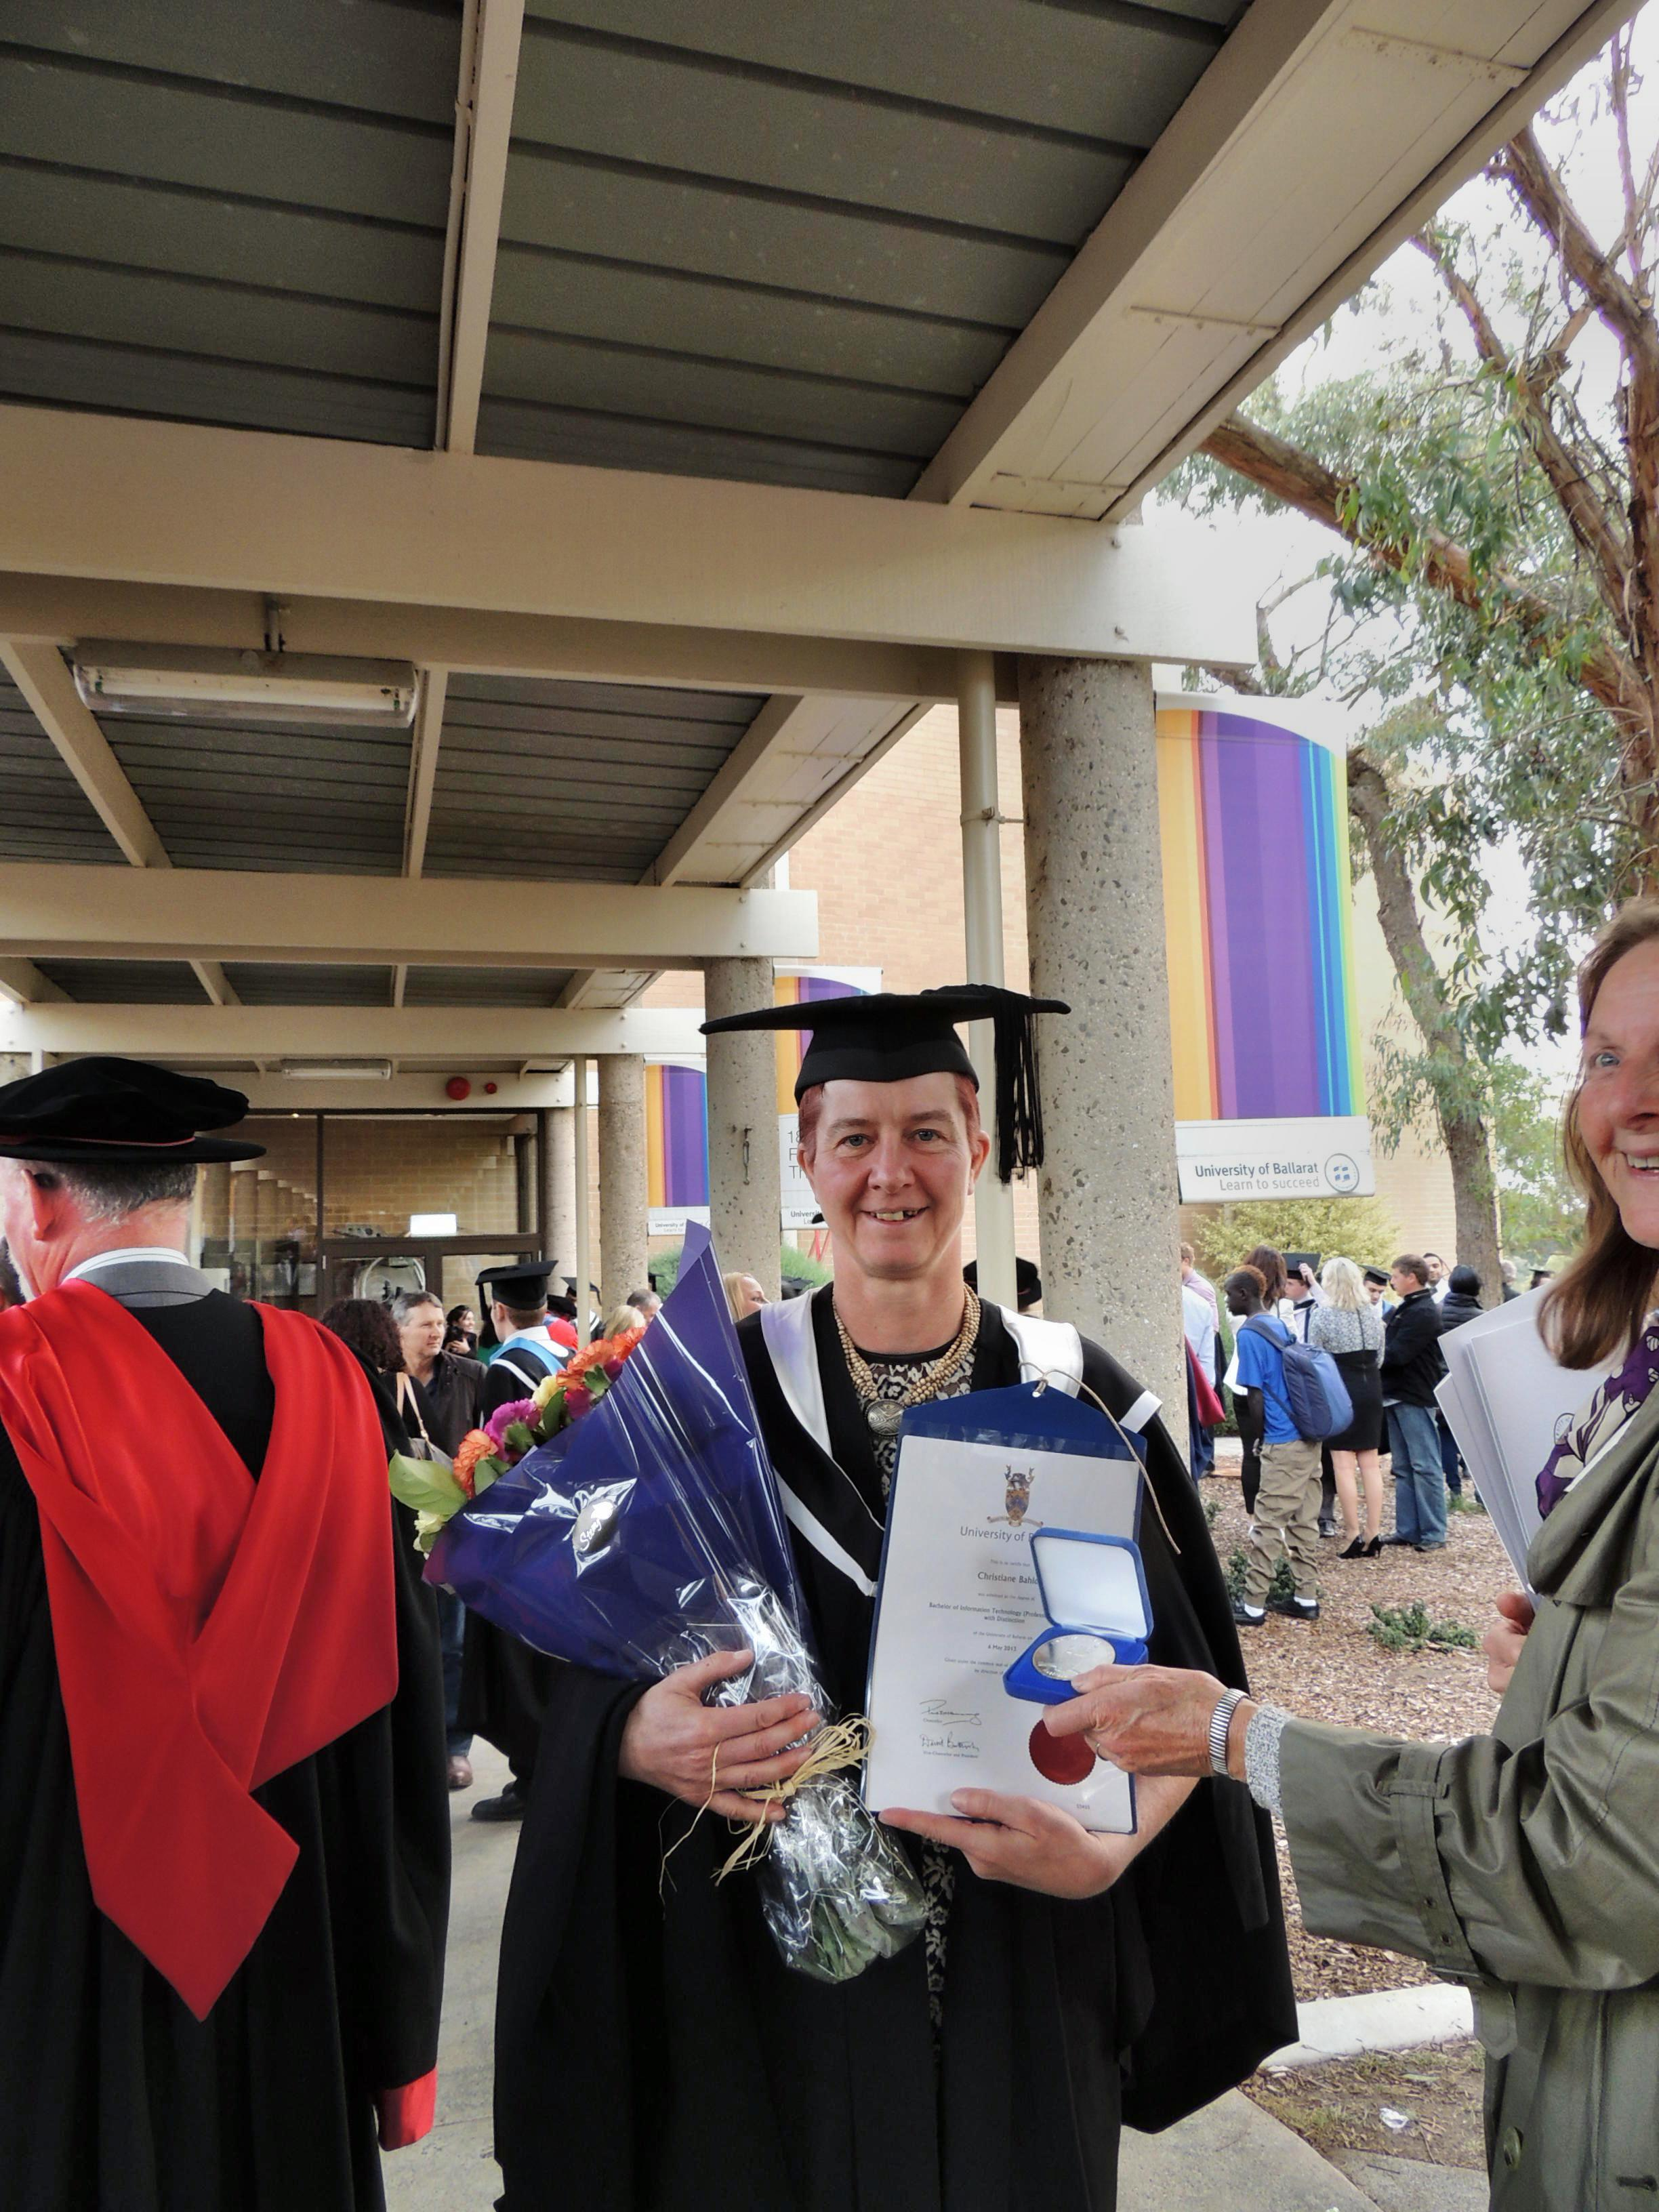 Chris-Graduation-027.jpeg